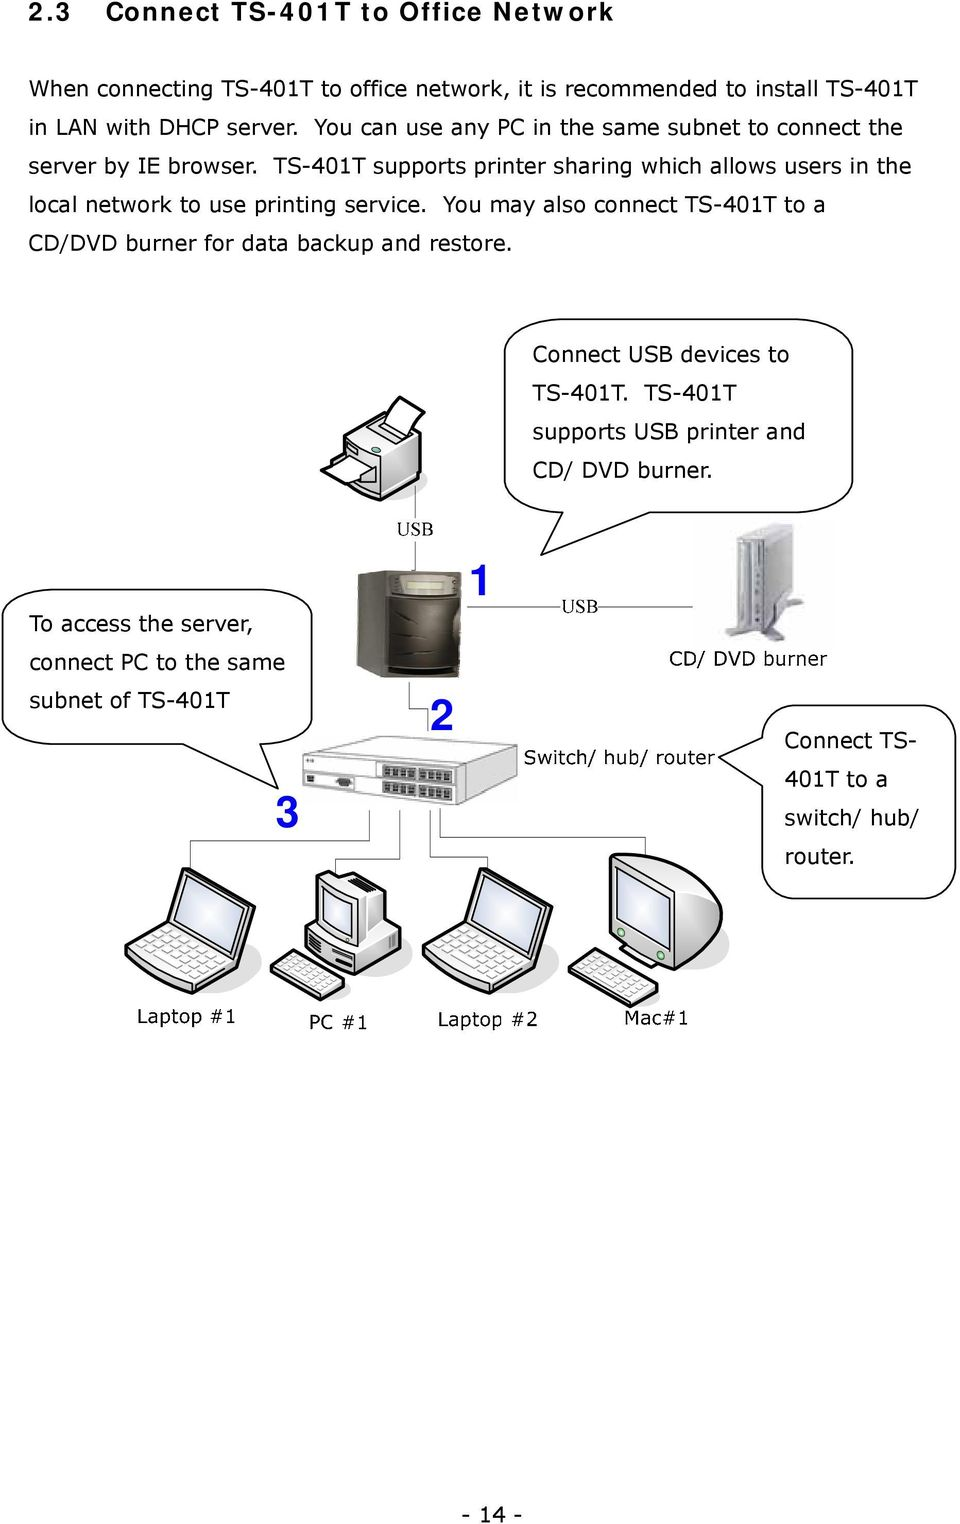 TS-401T supports printer sharing which allows users in the local network to use printing service.